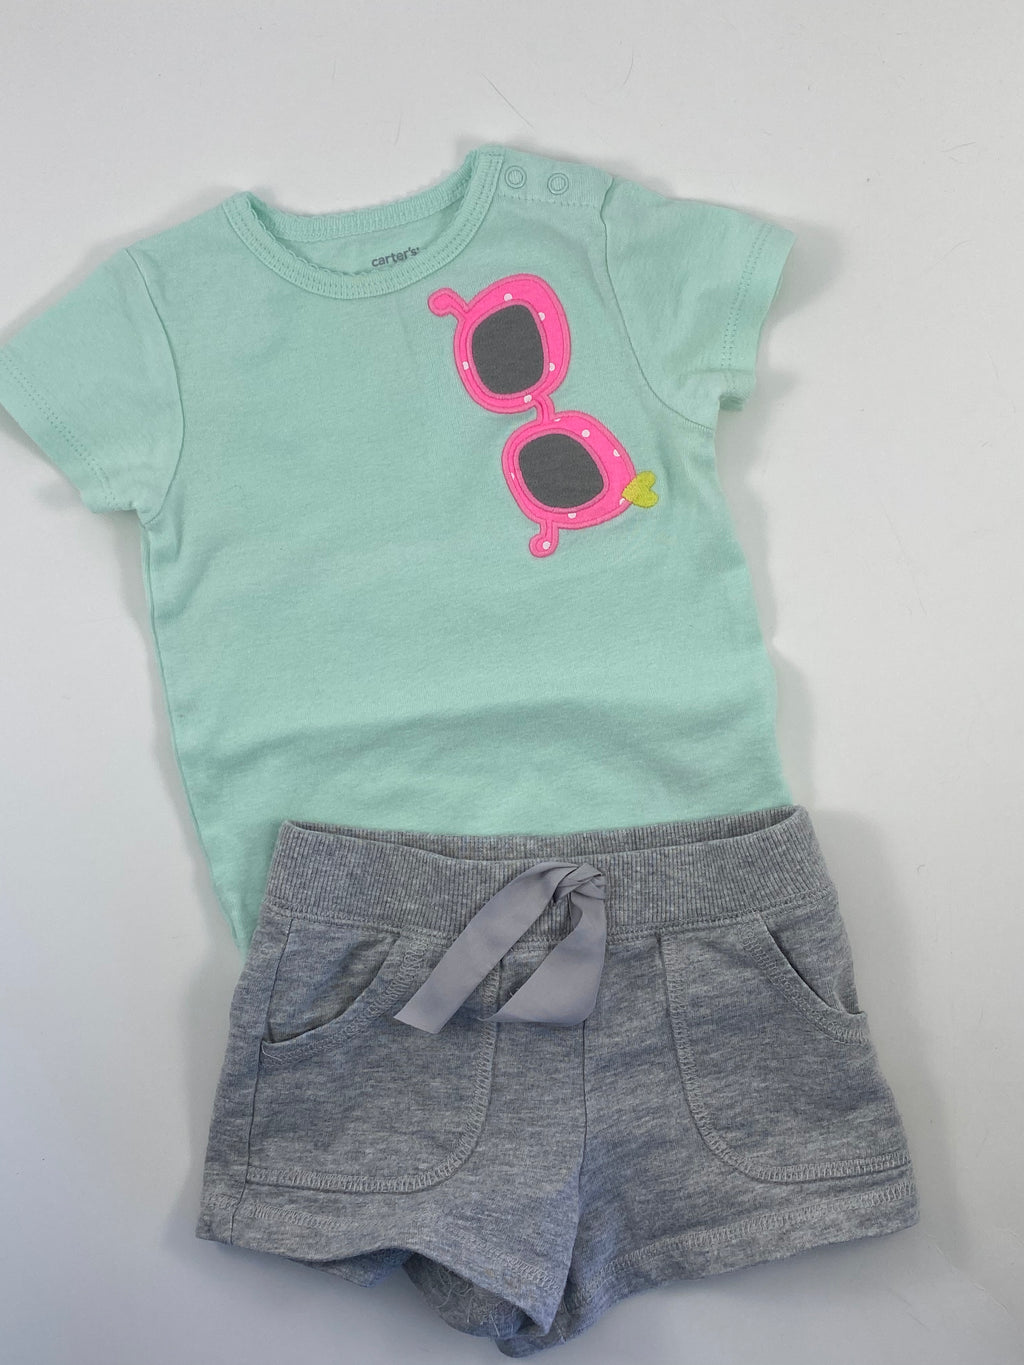 Girl's Short Sleeve Outfit - Size 18-24mo